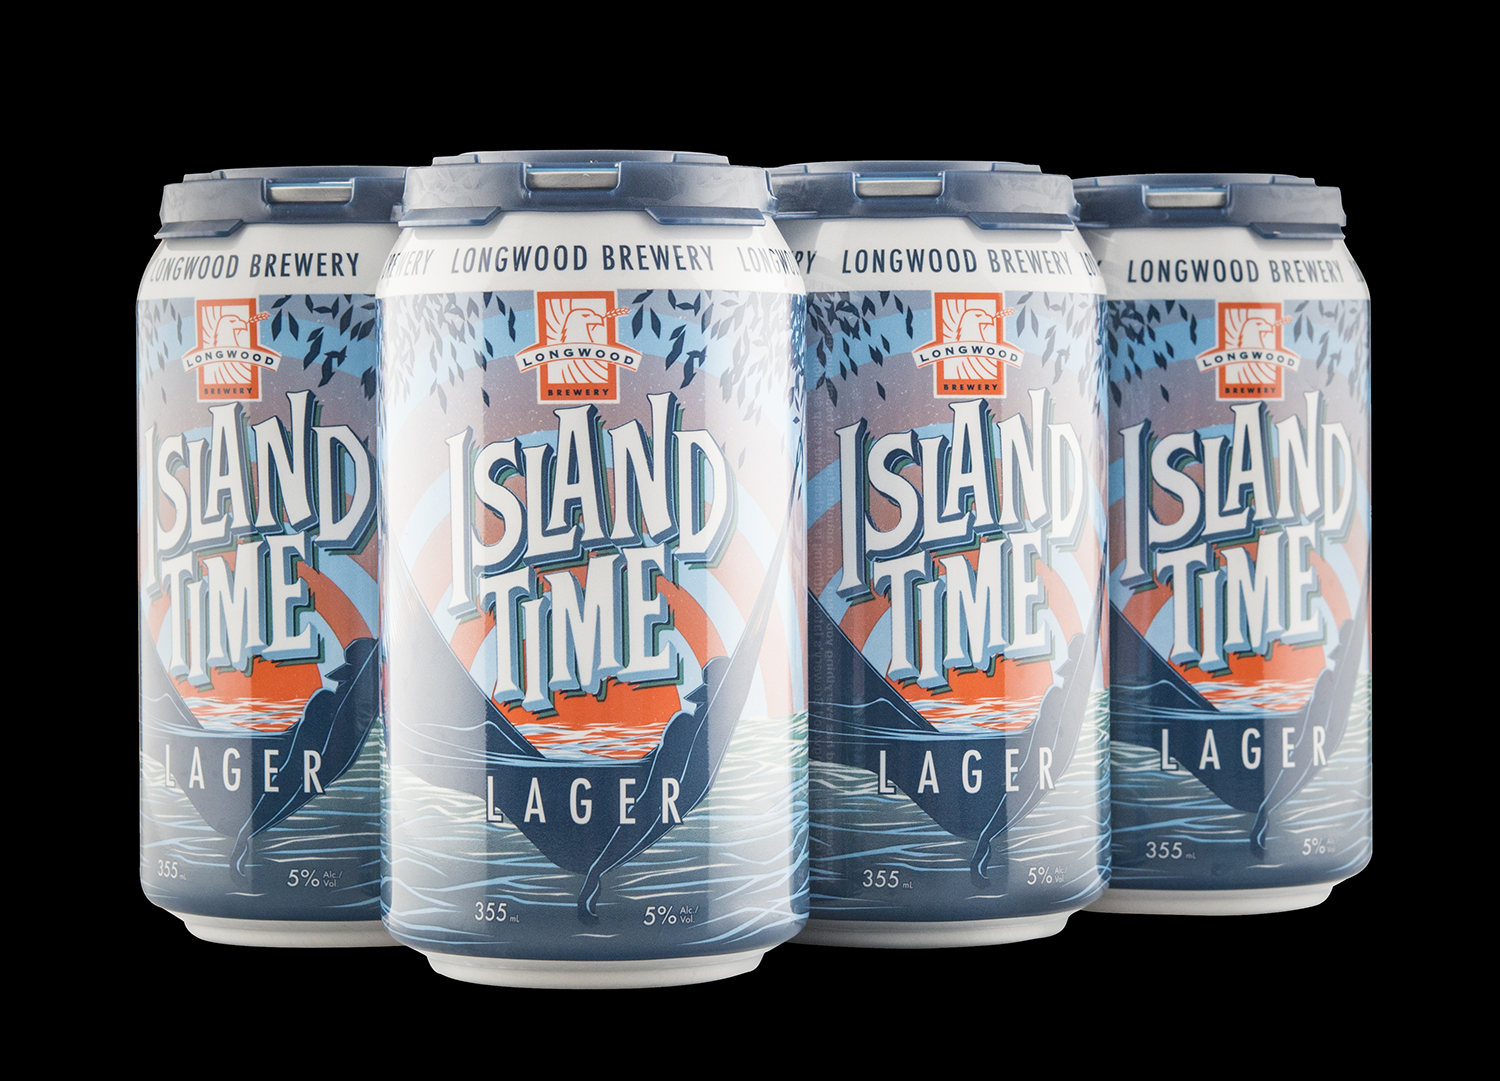 Packaging Design for Longwood Brewery's Island Time Lager